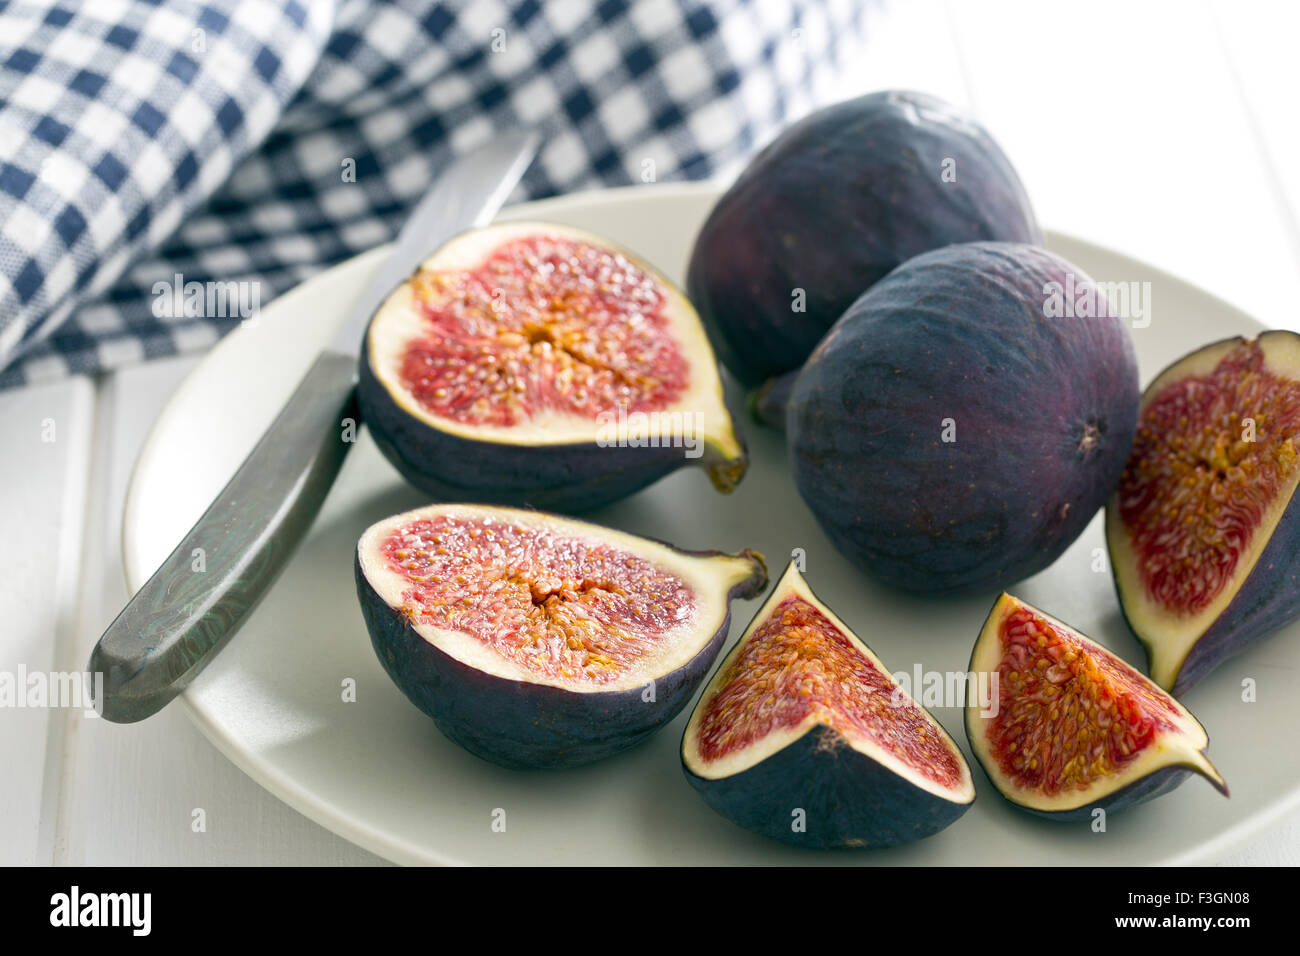 sliced fresh figs on plate with knife - Stock Image